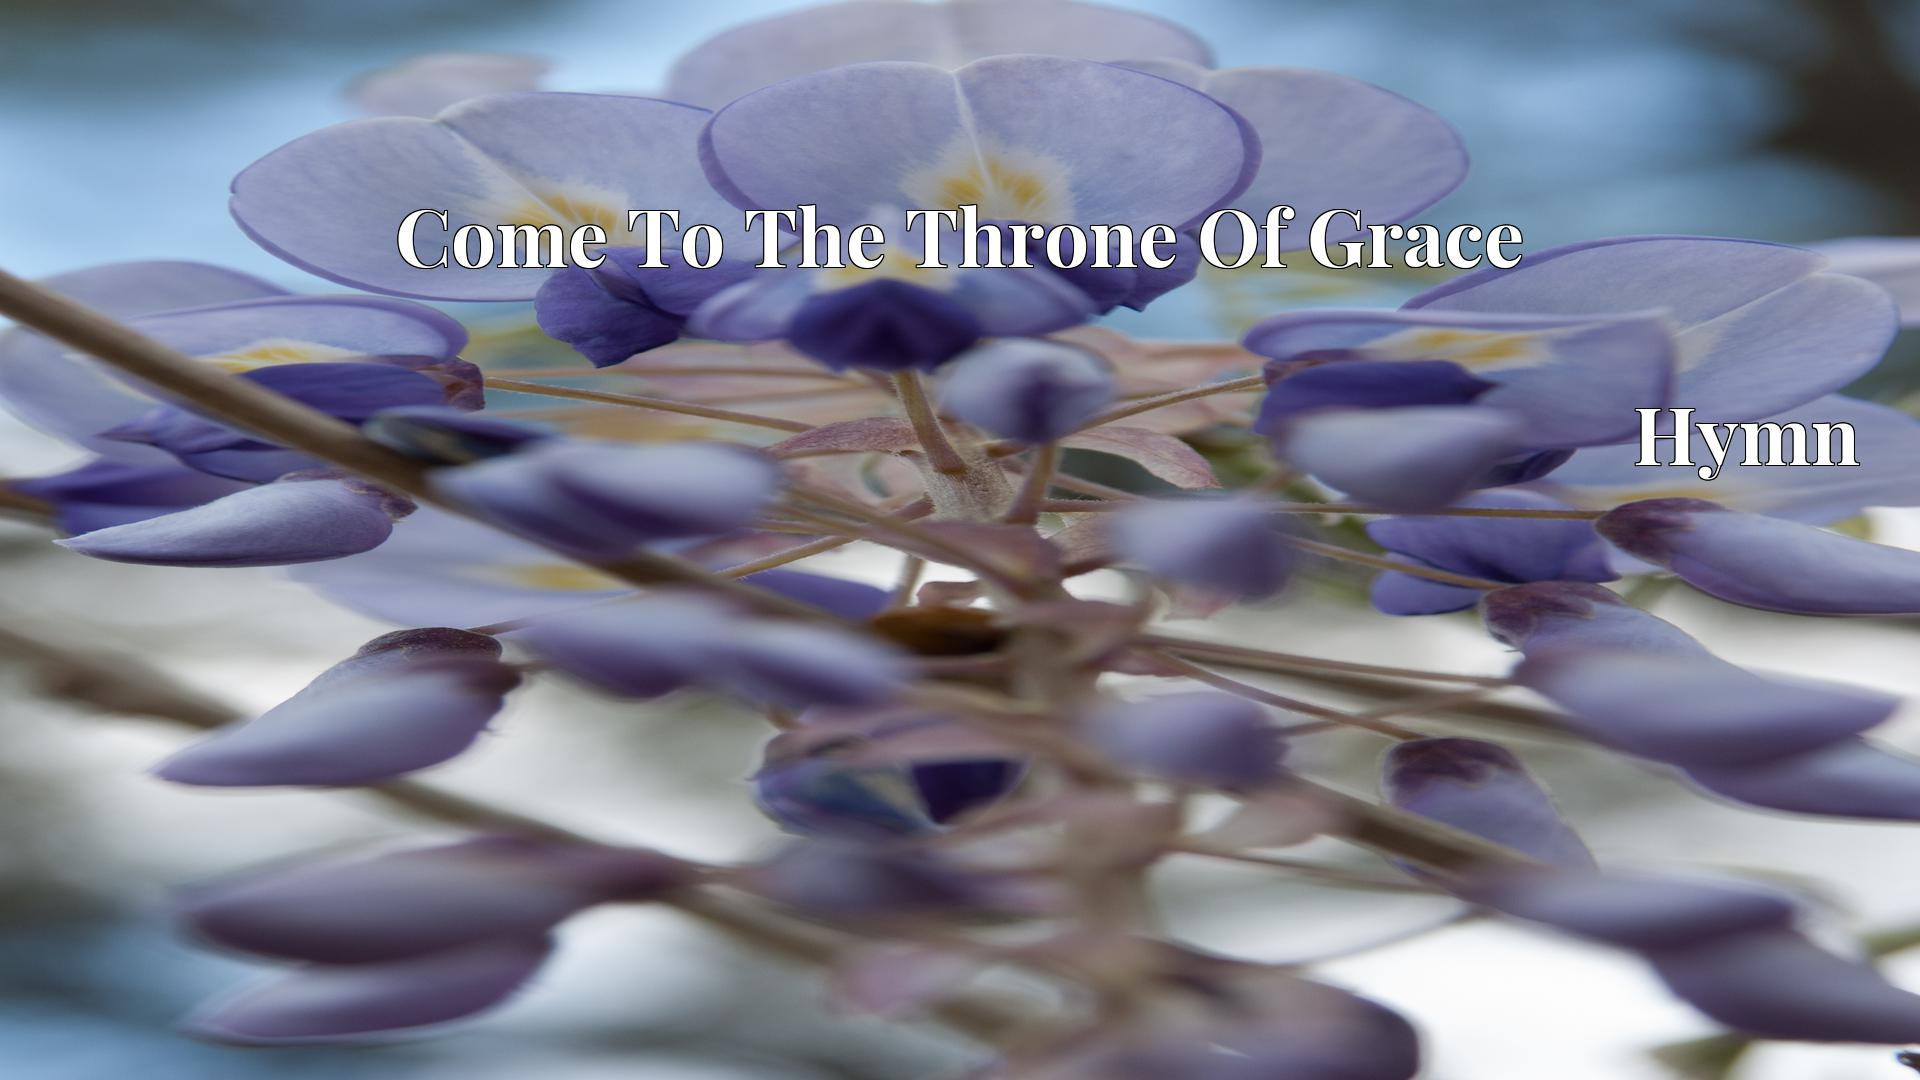 Come To The Throne Of Grace - Hymn